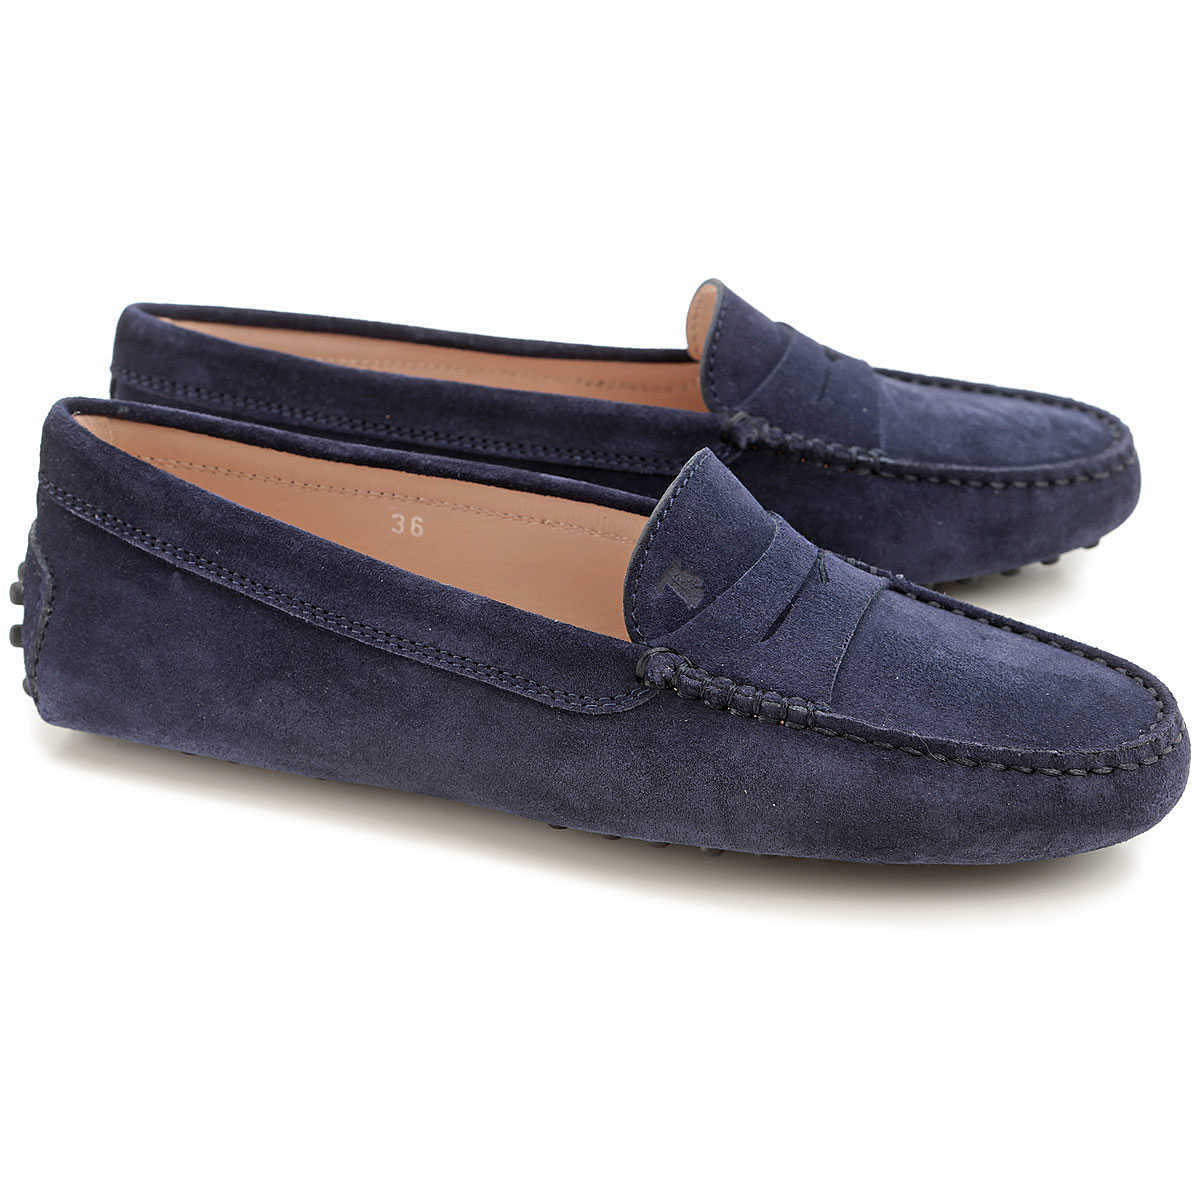 Tods Loafers for Women Dark Galaxy blue - GOOFASH